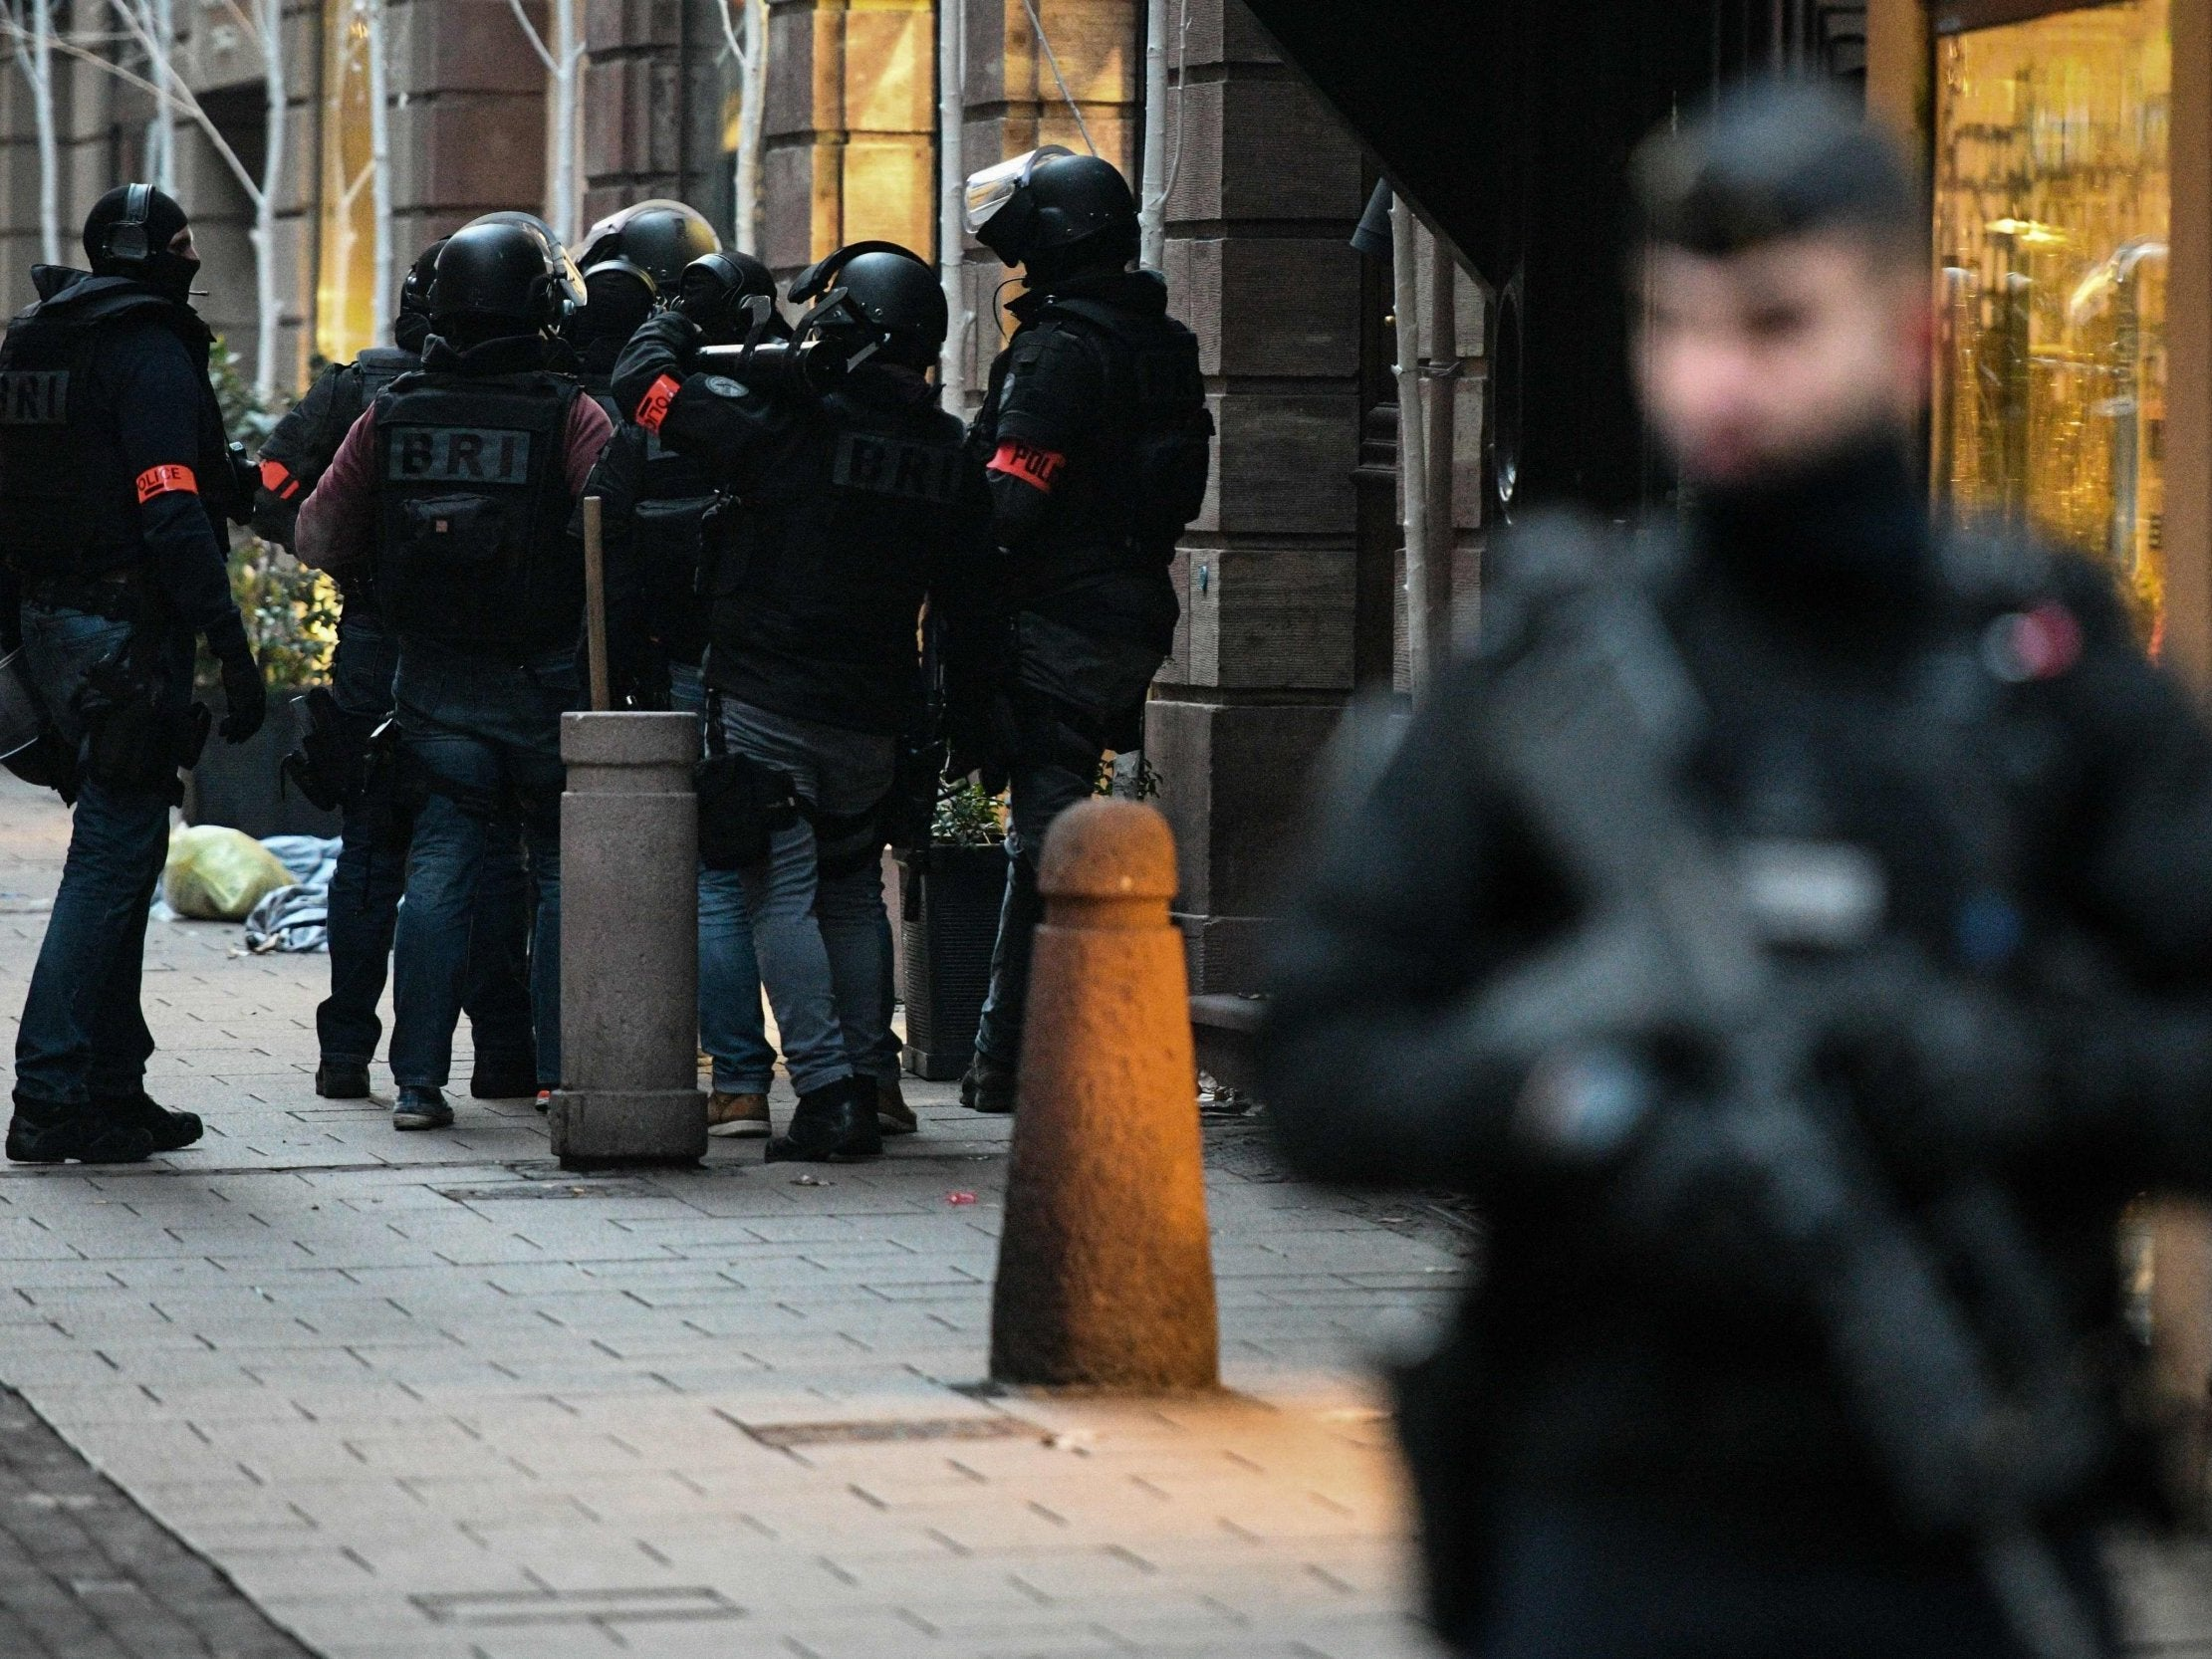 Strasbourg manhunt: France raises terror alert level as police search for gunman who killed two at Christmas market